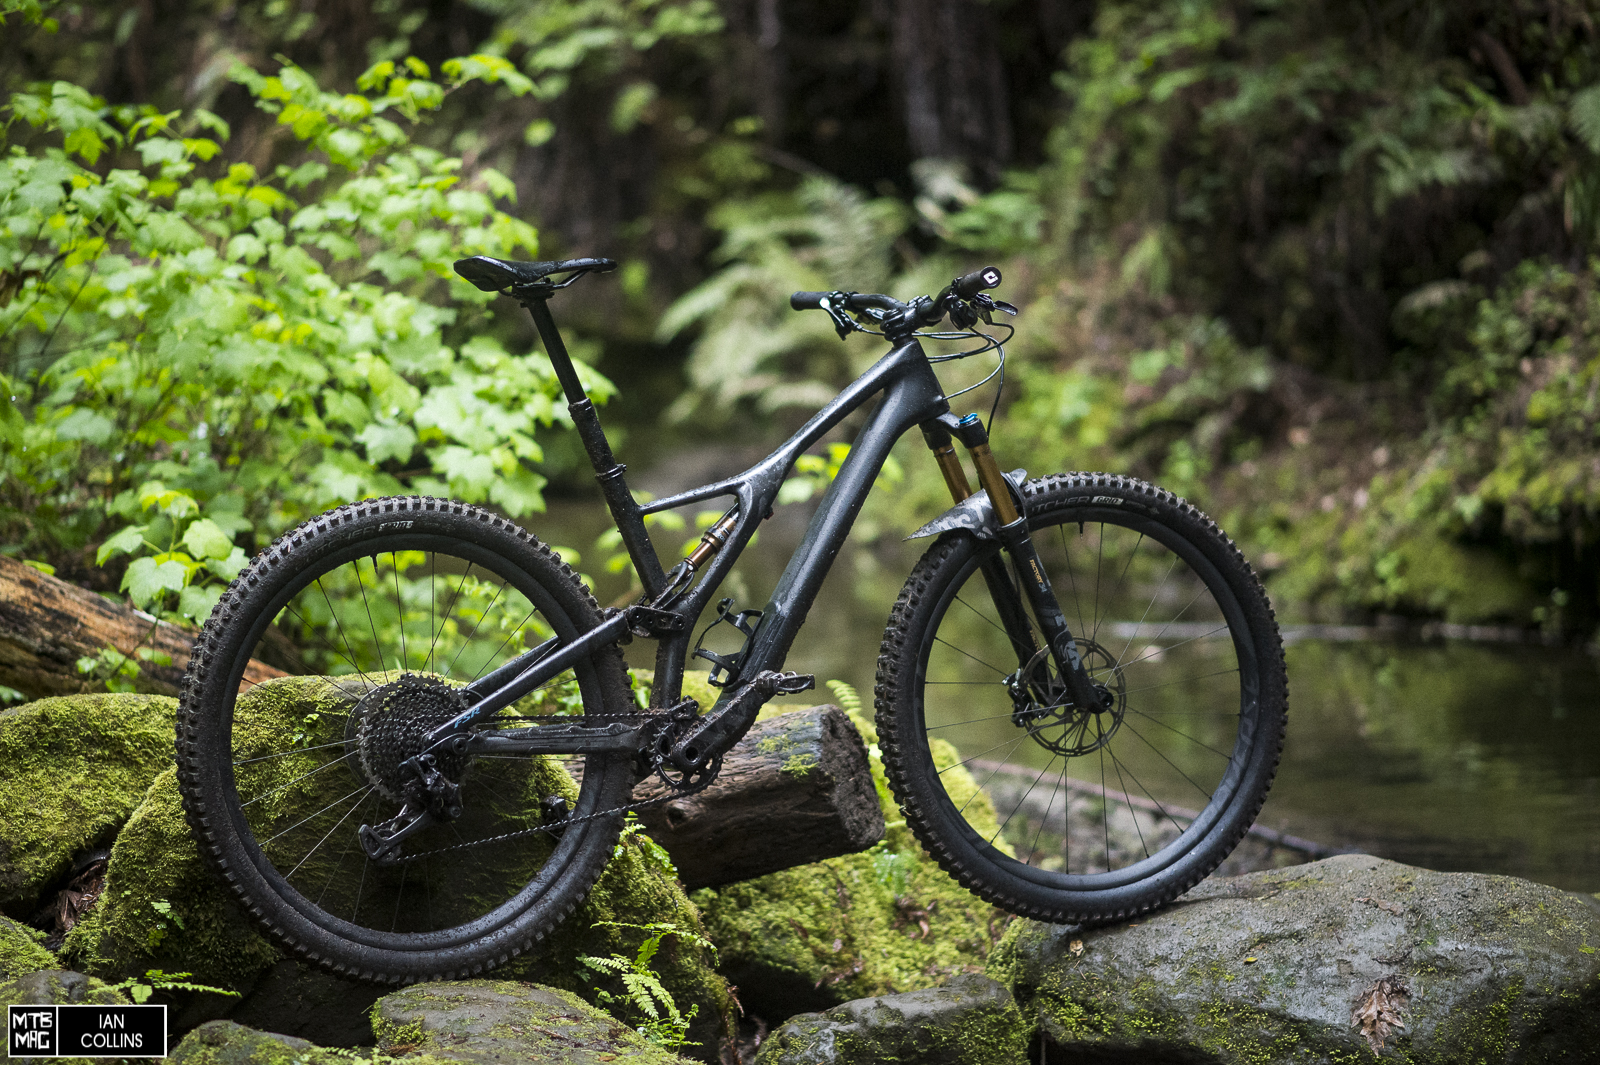 MTB-MAG COM - Mountain Bike Magazine | [First Ride] Specialized S